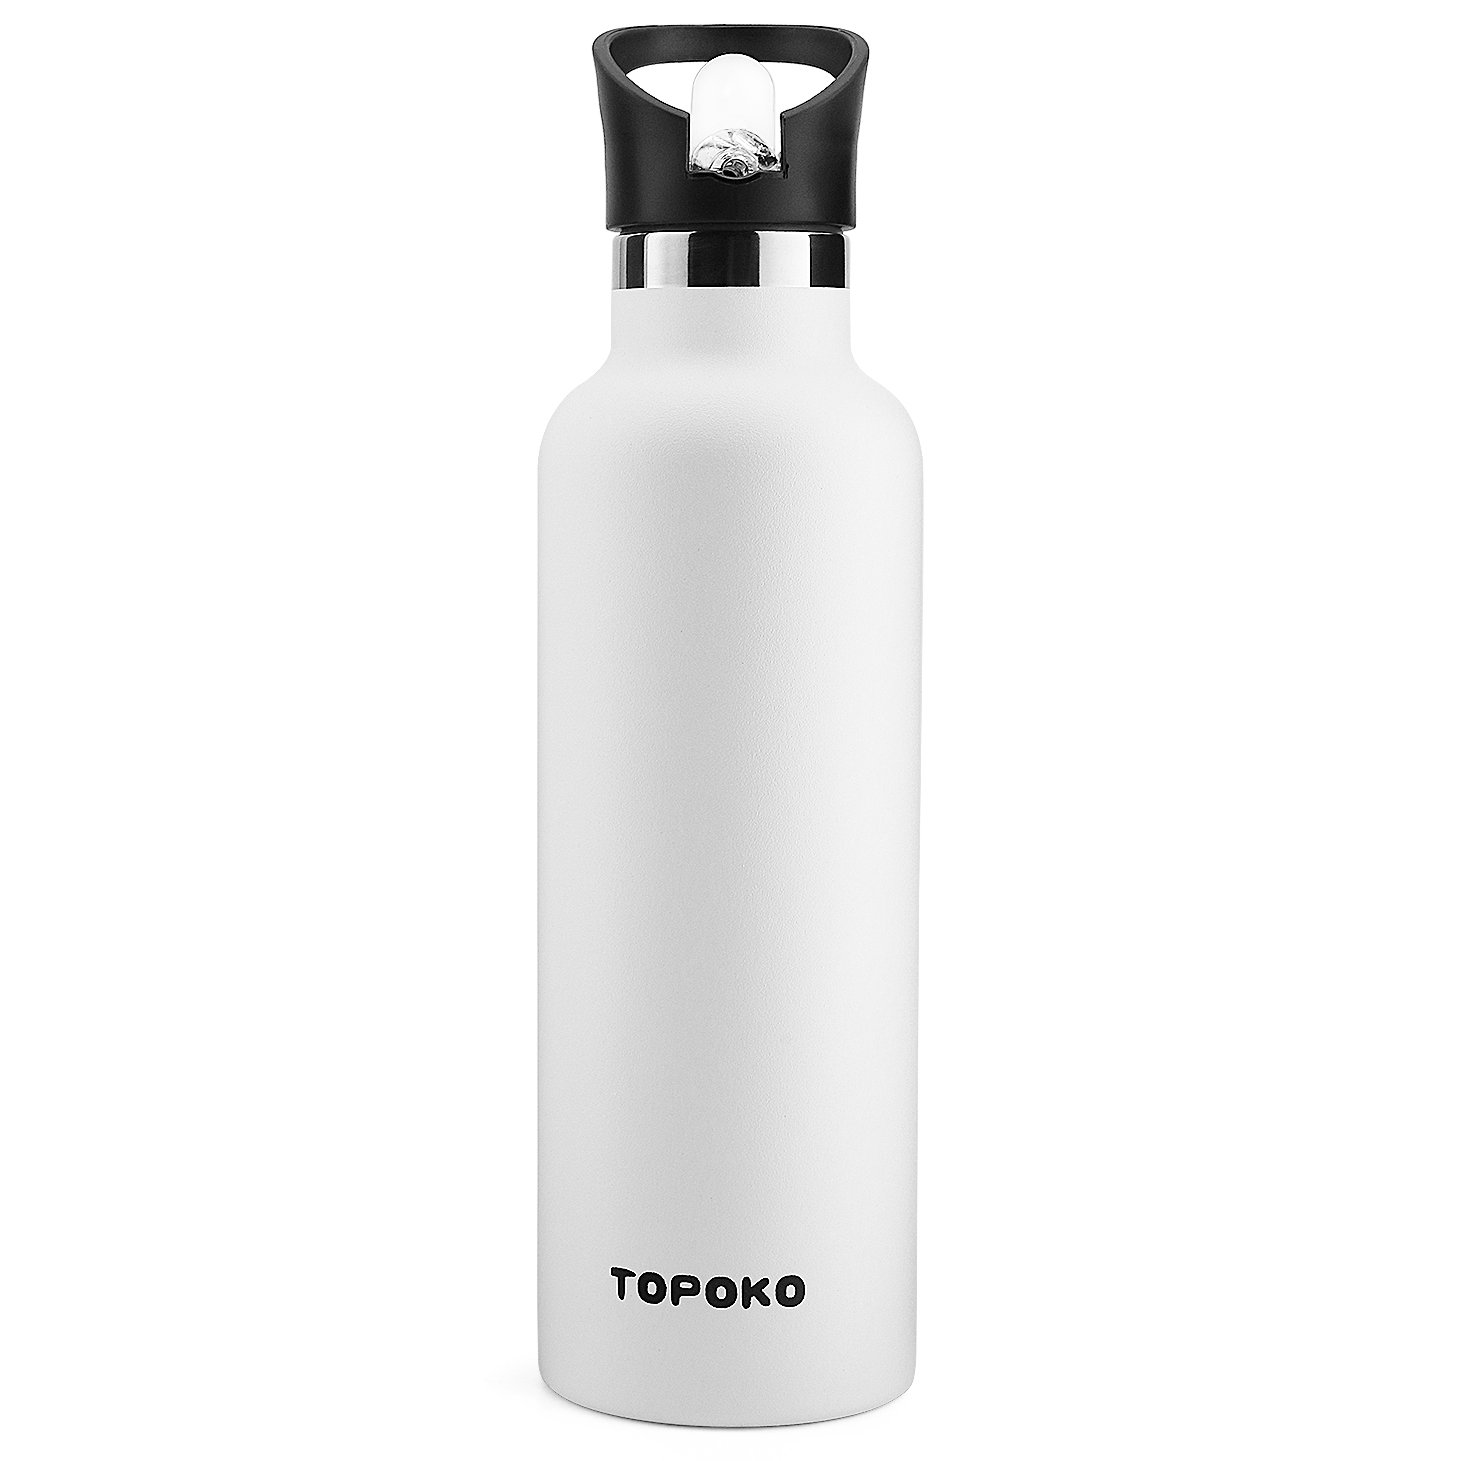 25 OZ Vacuum Insulated Stainless Steel Double Wall, Sweat Proof, Leak Proof Thermos Hot Cold Water Bottle/Wide or Small Mouth, Vacuum Seal Cap, Reusable Travel Mug. (Piano White)